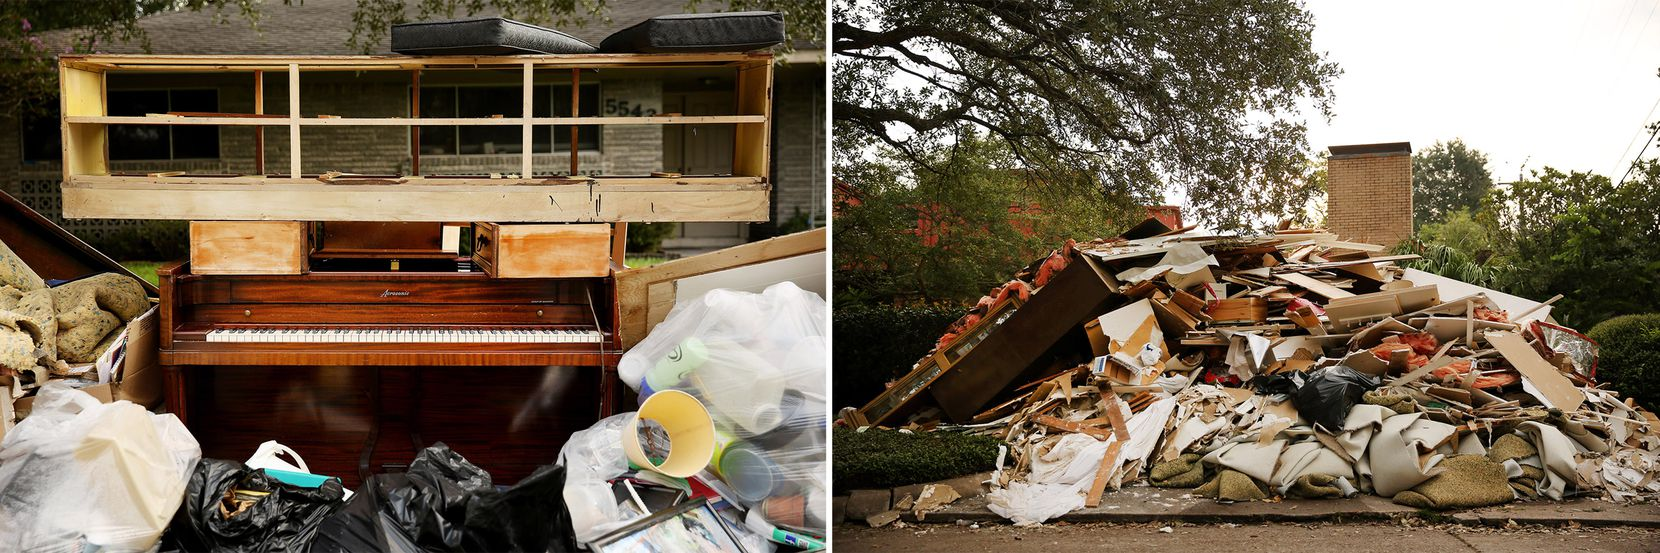 Heaps of trash, including instruments and kitchen supplies, filled driveways and covered sidewalks.